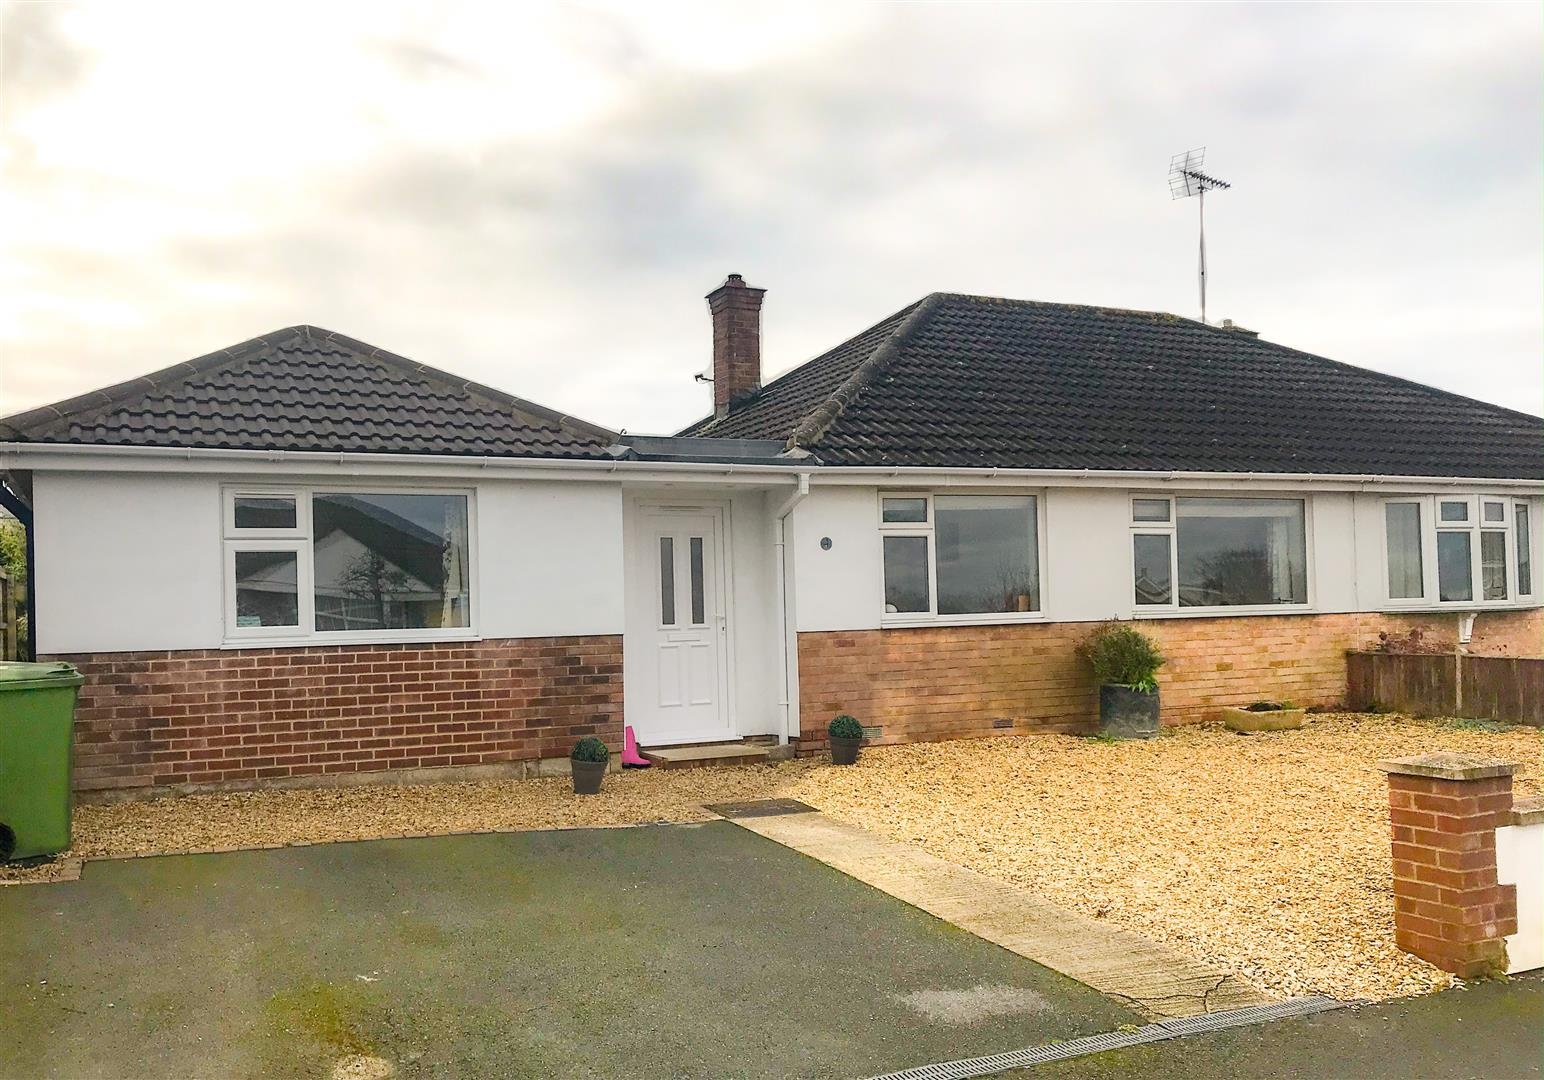 4 bedroom semi detached bungalow for sale